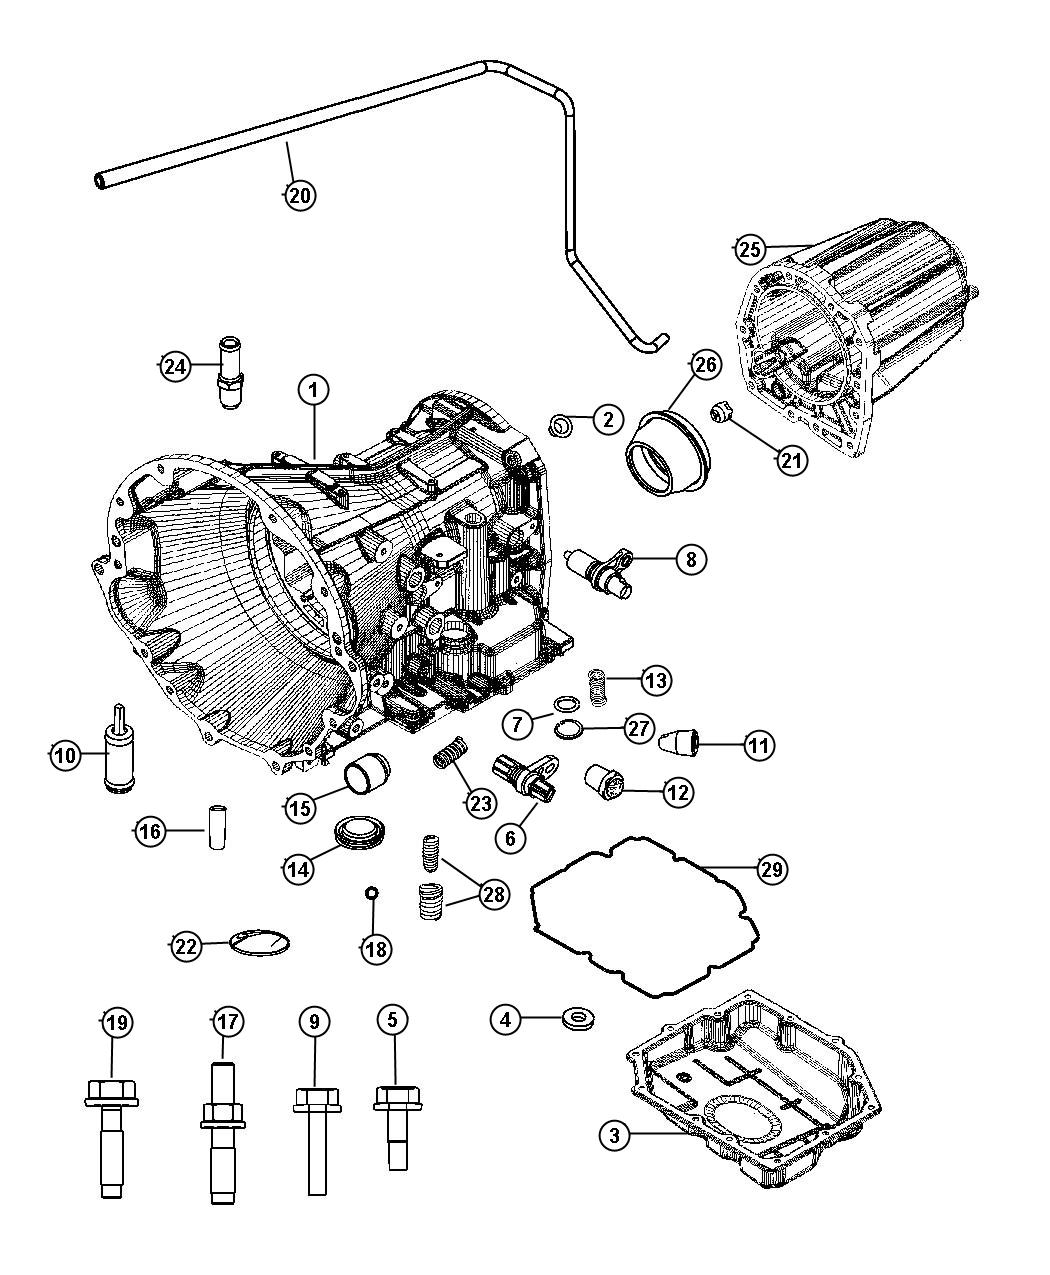 dodge ram 1500 tailgate part diagram  dodge  free engine